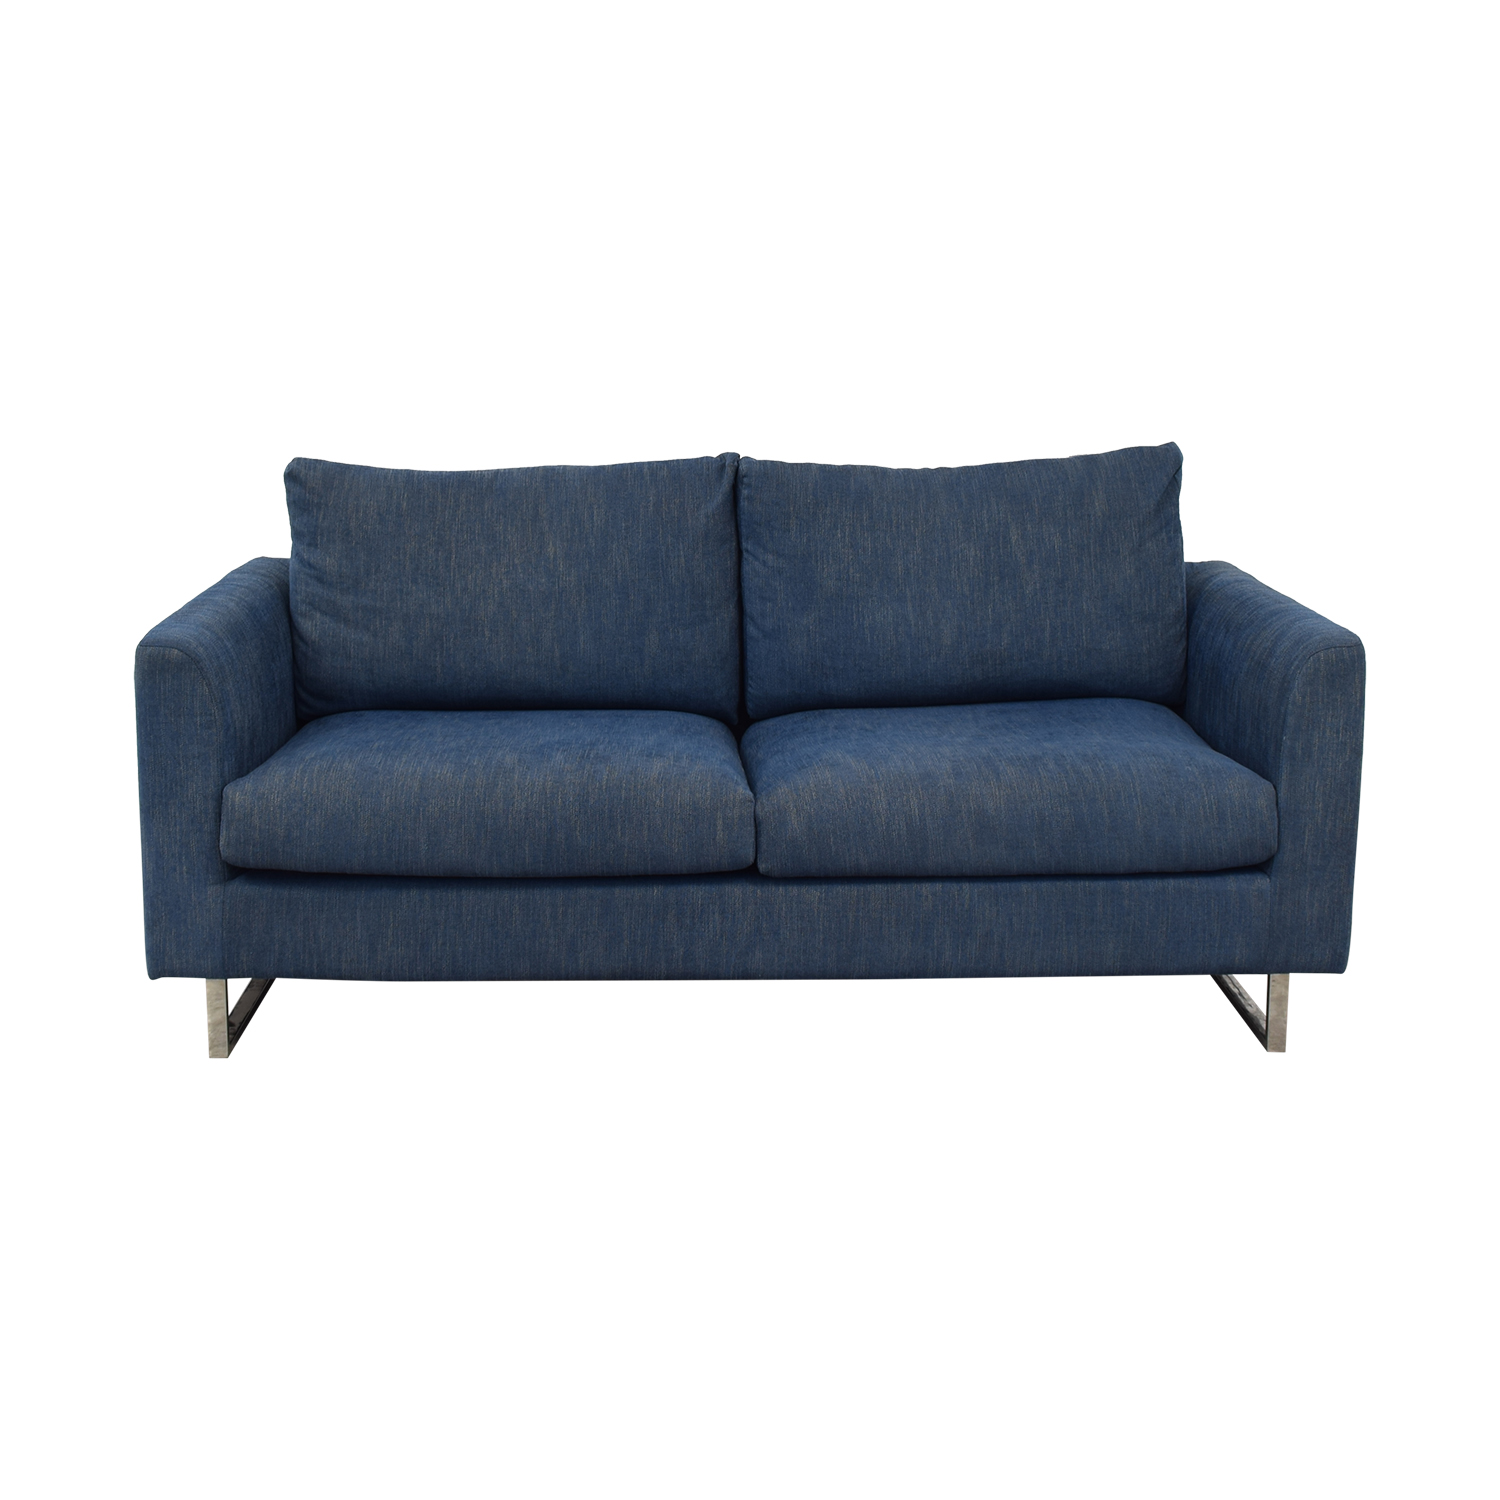 shop Owens Blue Two-Cushion Sofa Interior Define Sofas